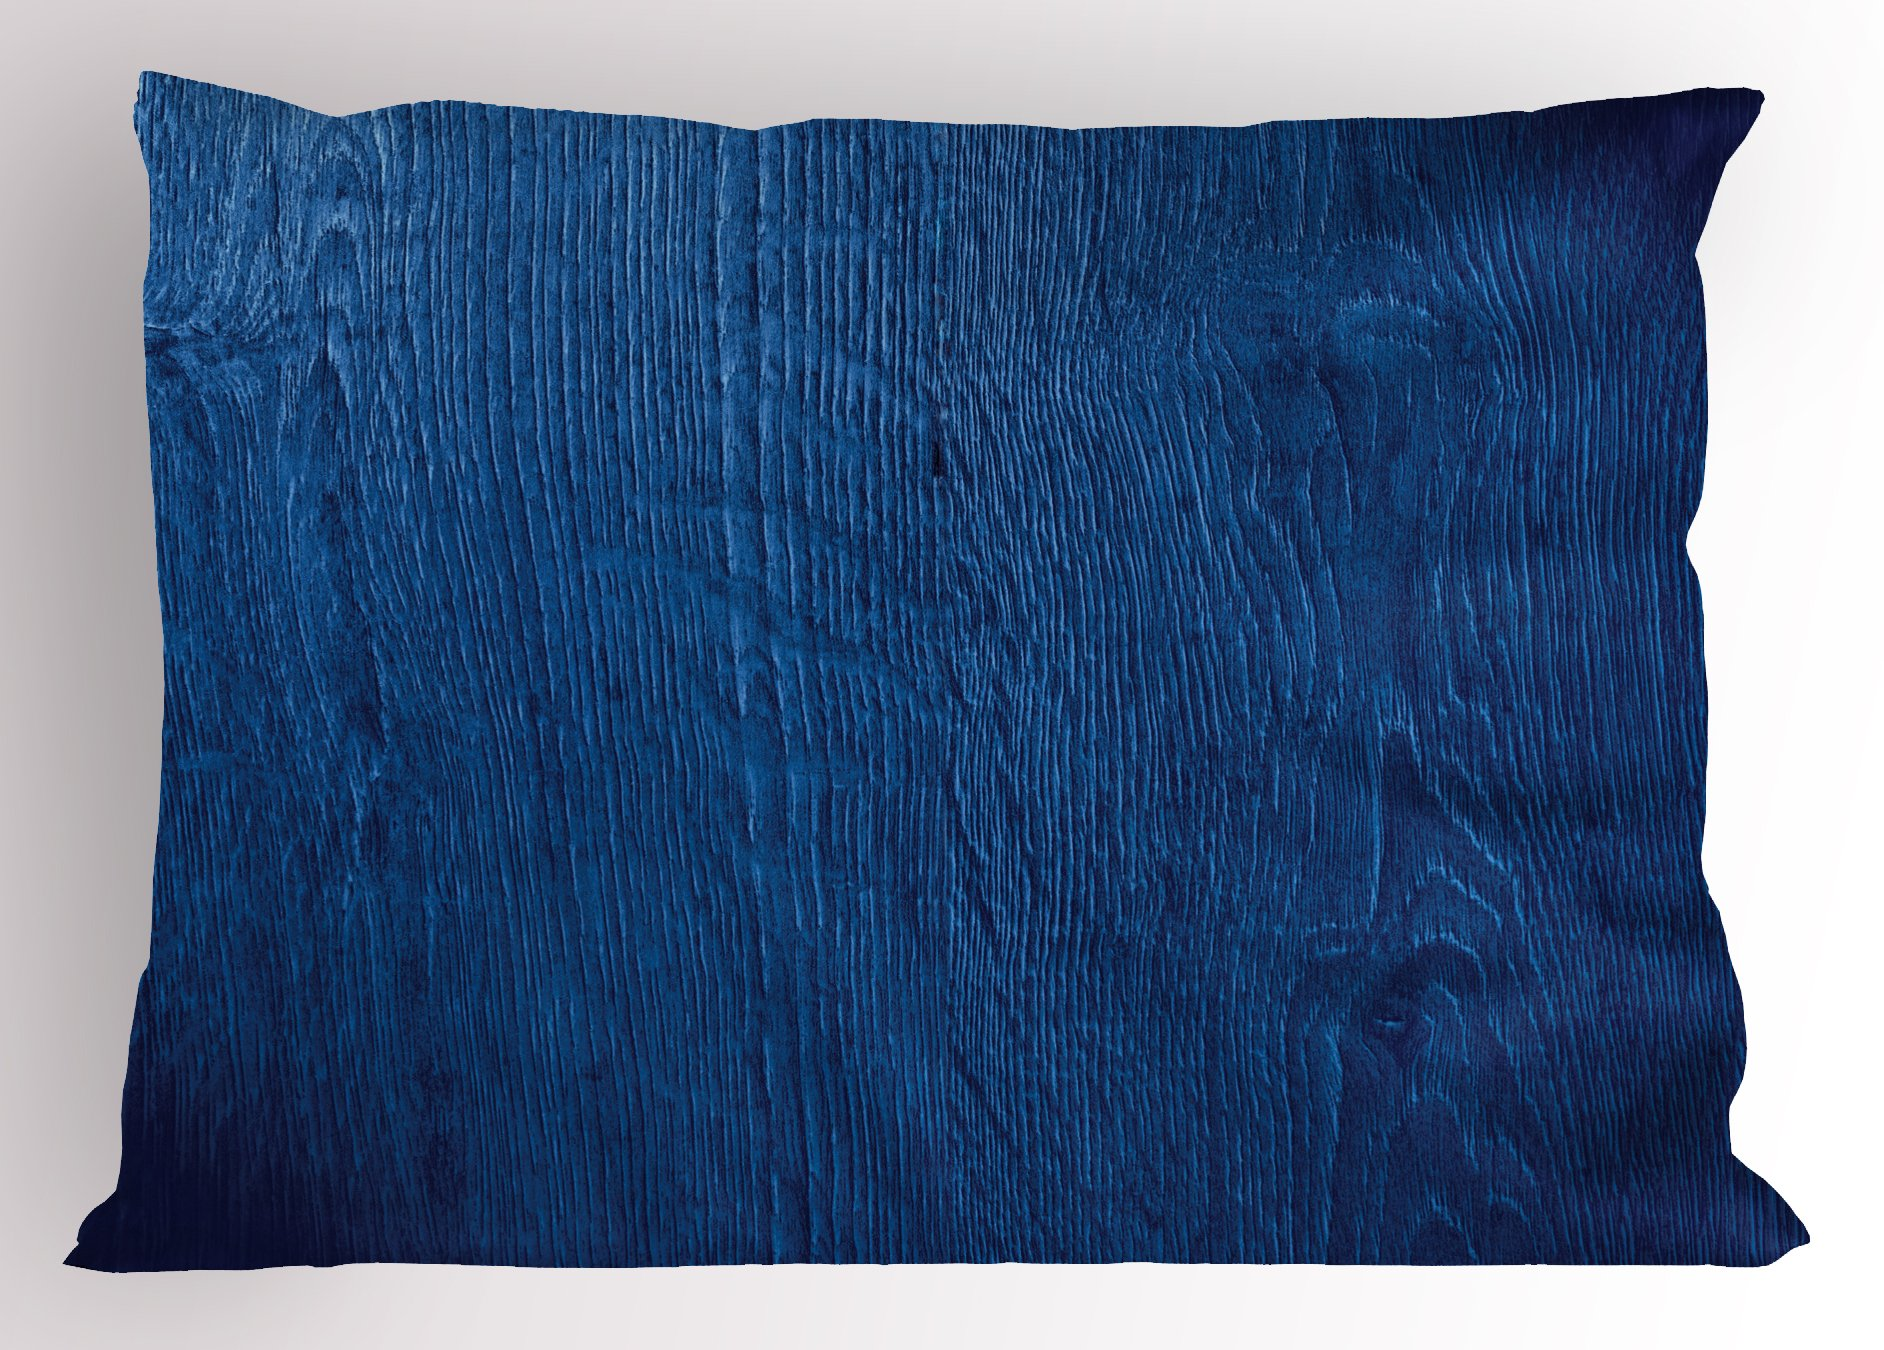 Lunarable Navy Blue Pillow Sham, Photo of Oak Wood Texture Rustic Nature Vintage Style Decorative Artprint Home, Decorative Standard Queen Size Printed Pillowcase, 30 X 20 inches, Royal Blue